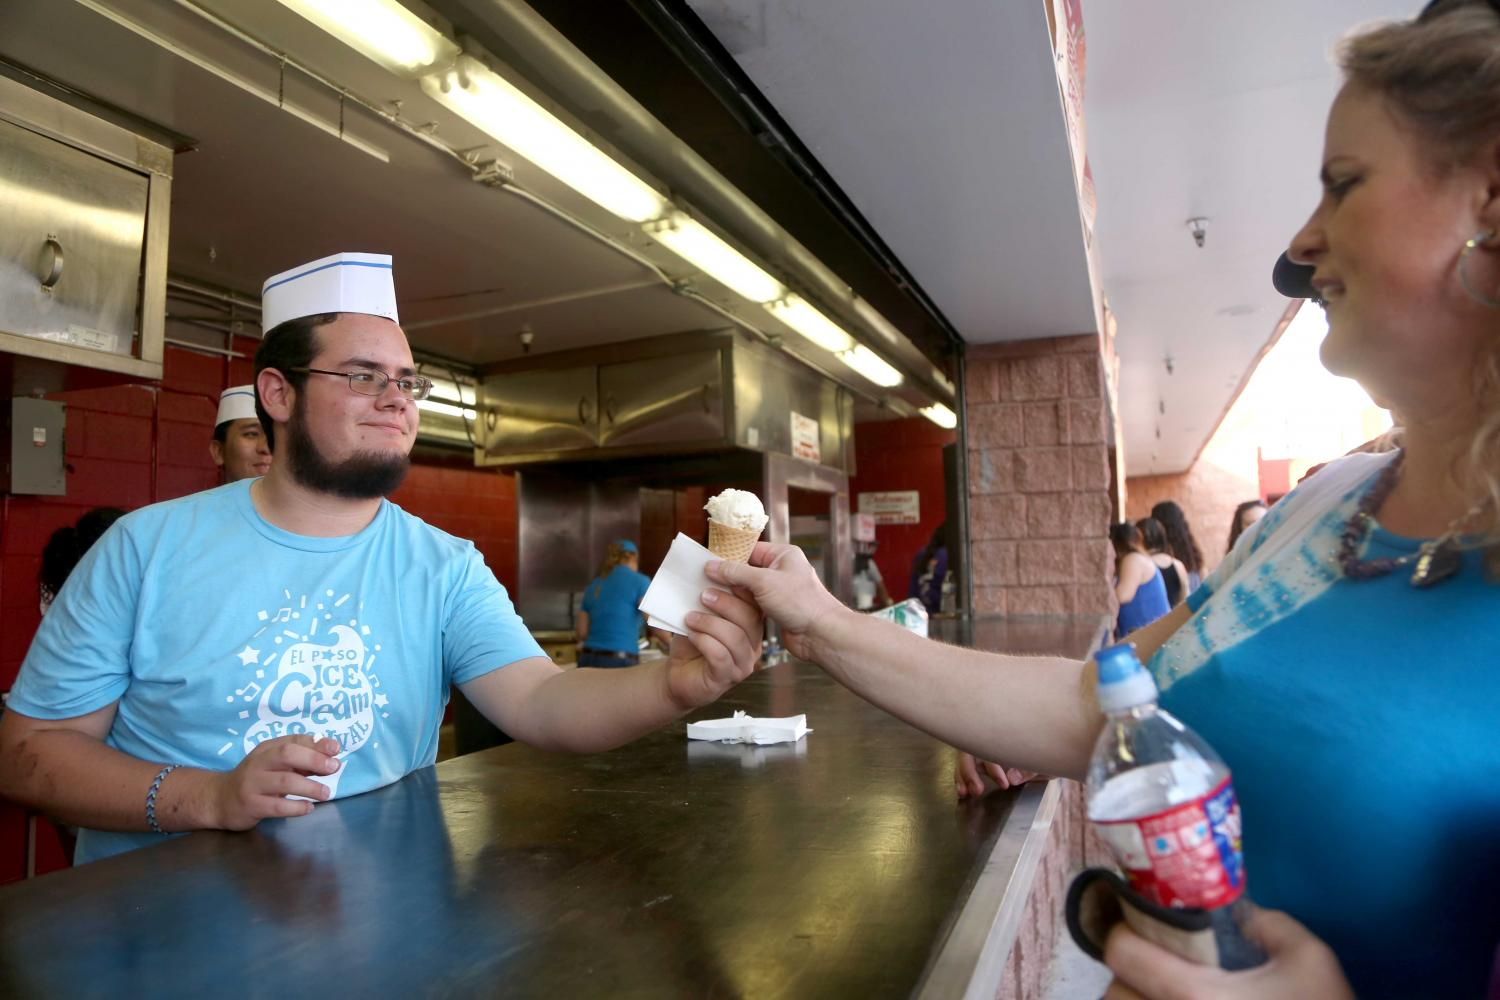 Ice Cream fest took place at Cohen stadium for the second year in a row on Sunday, July 2.